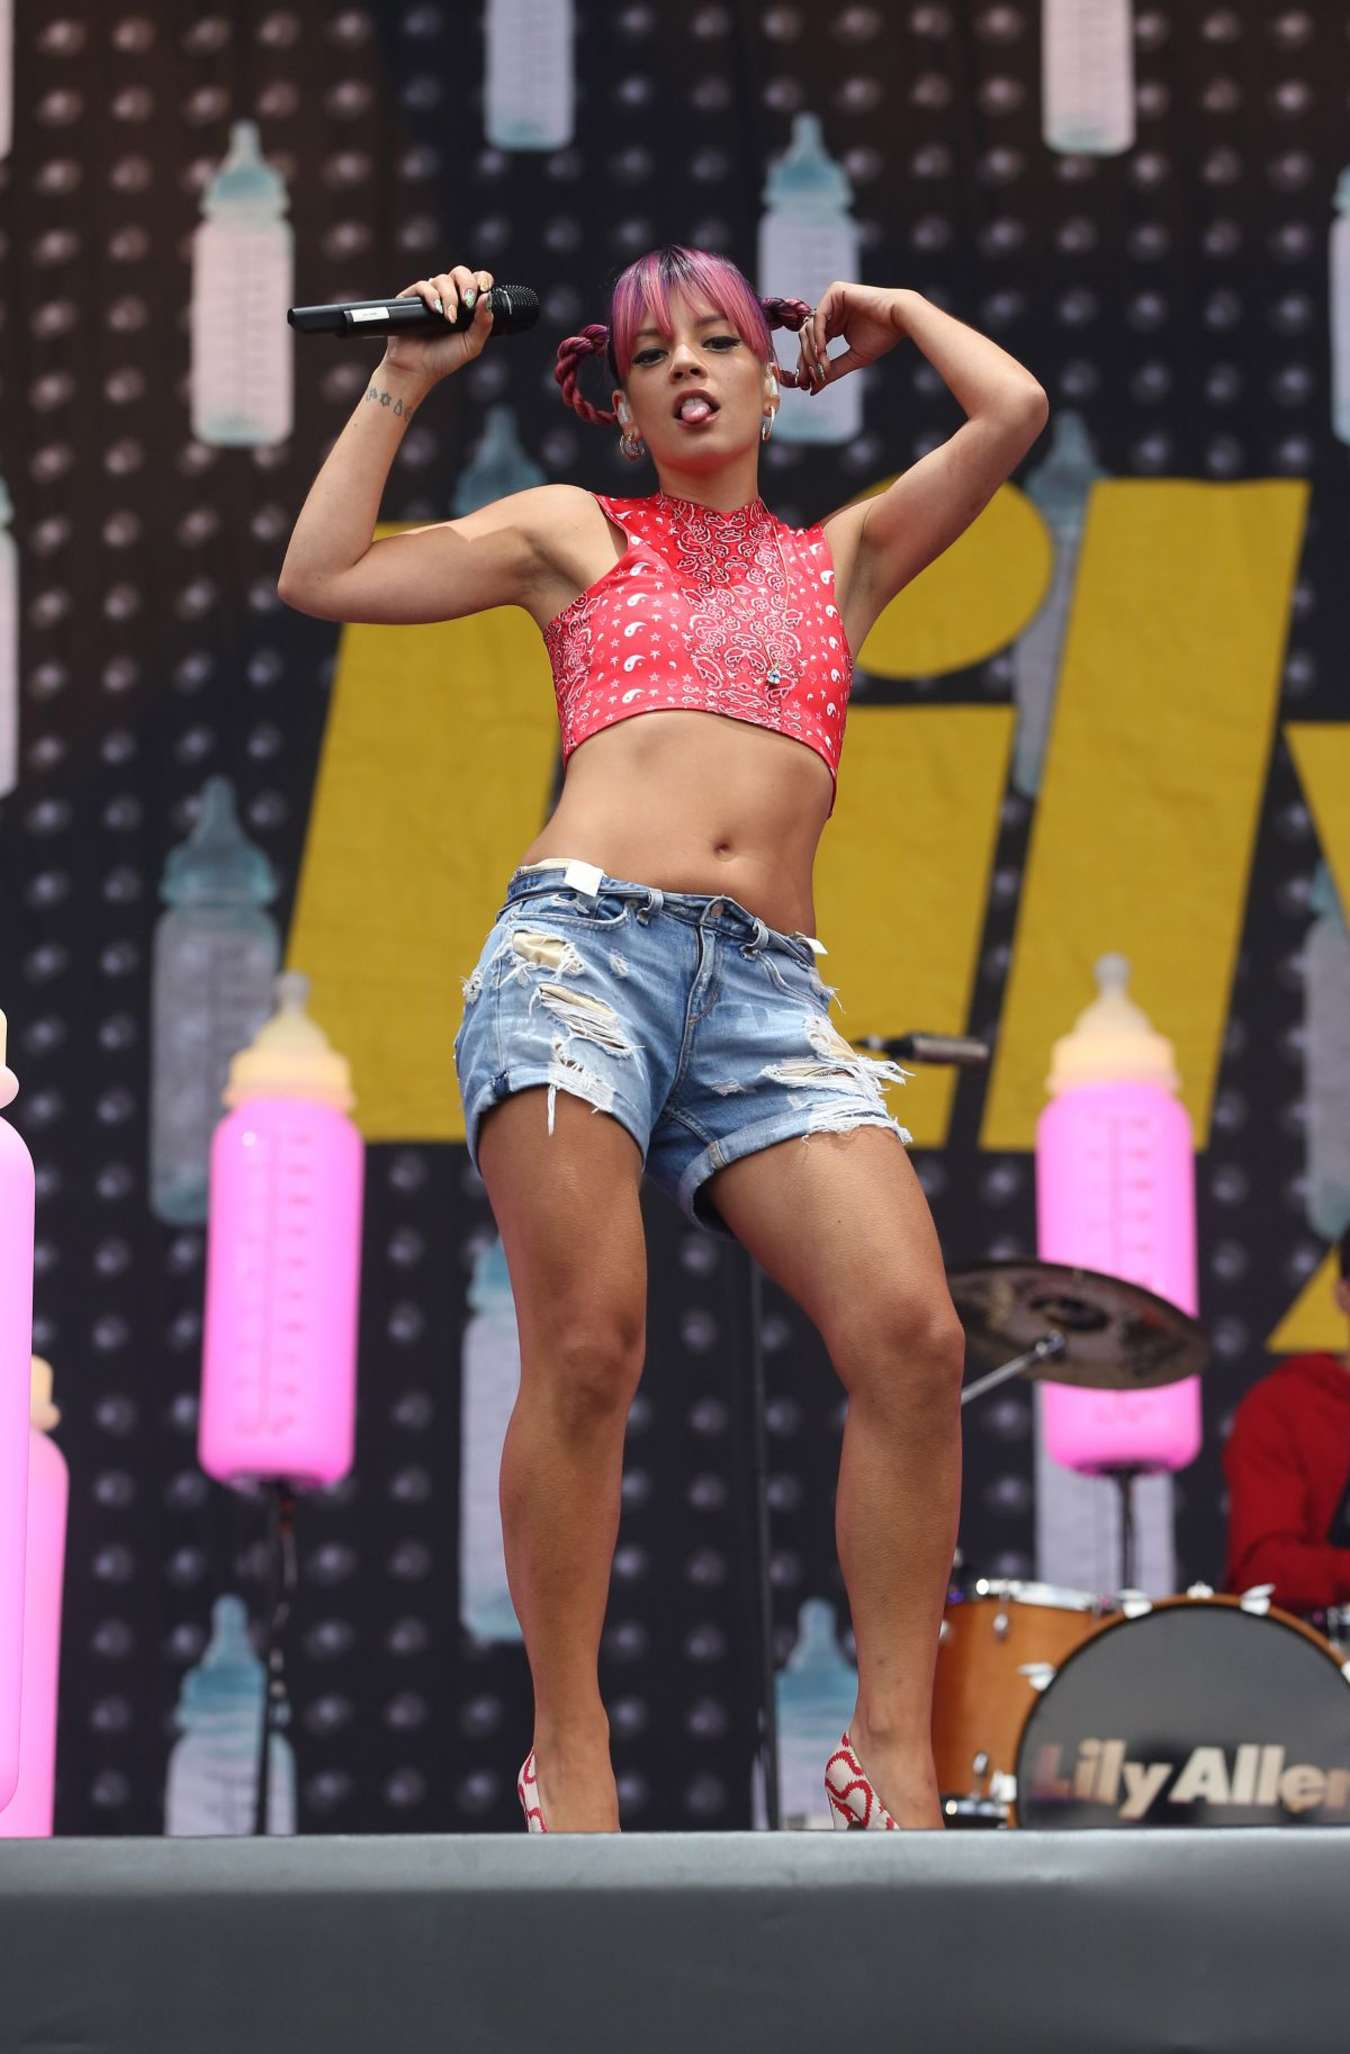 Lily Allen Performs at V Festival Day 1 in Chelmsford